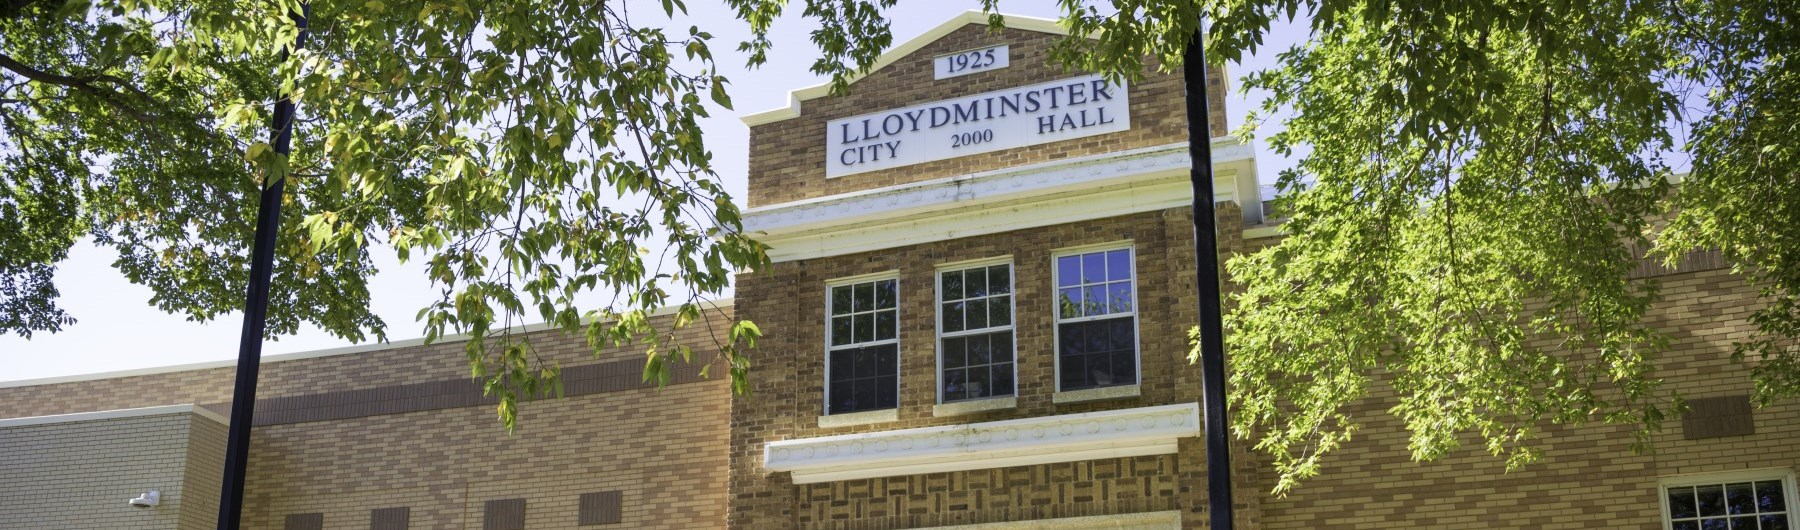 Lloydminster City Hall